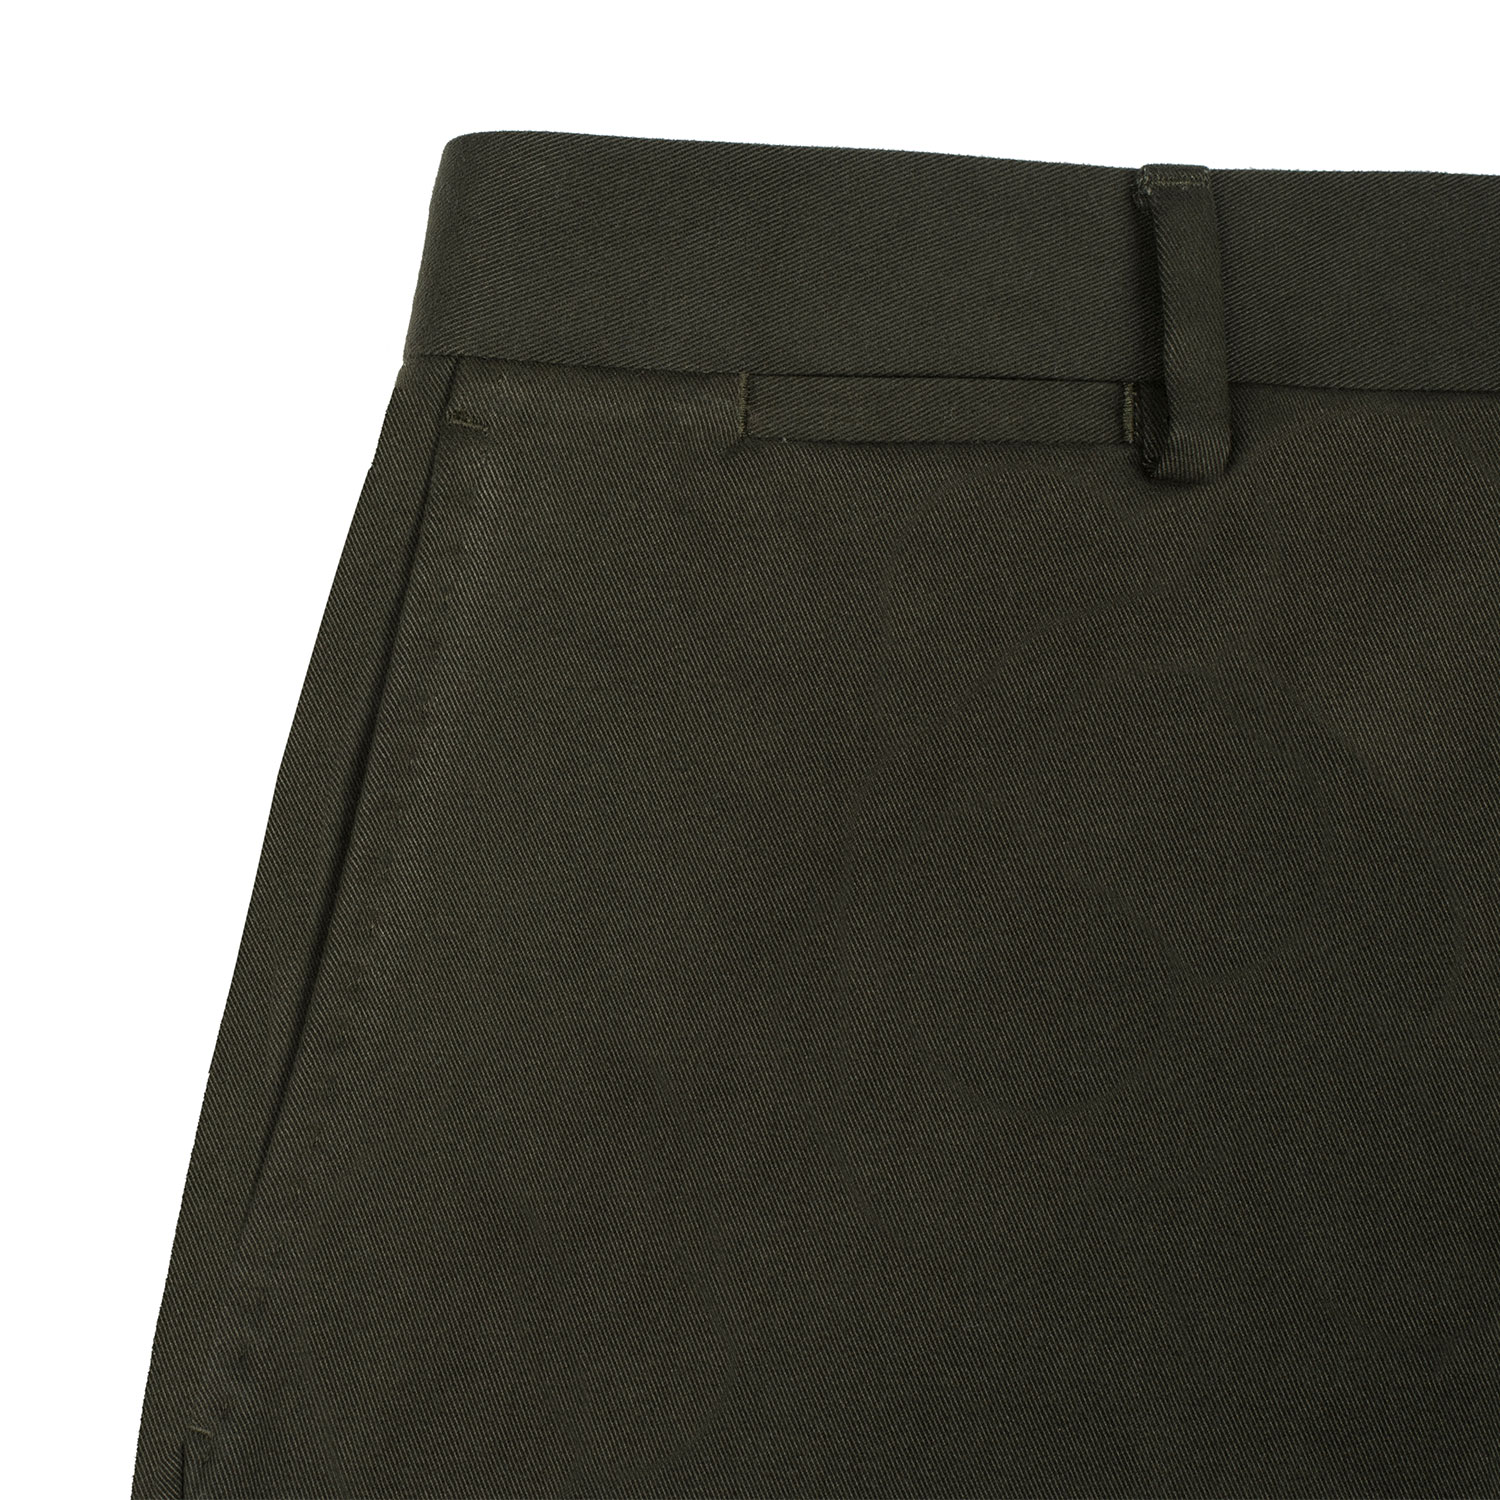 Slanted Pockets with Pic Stitching